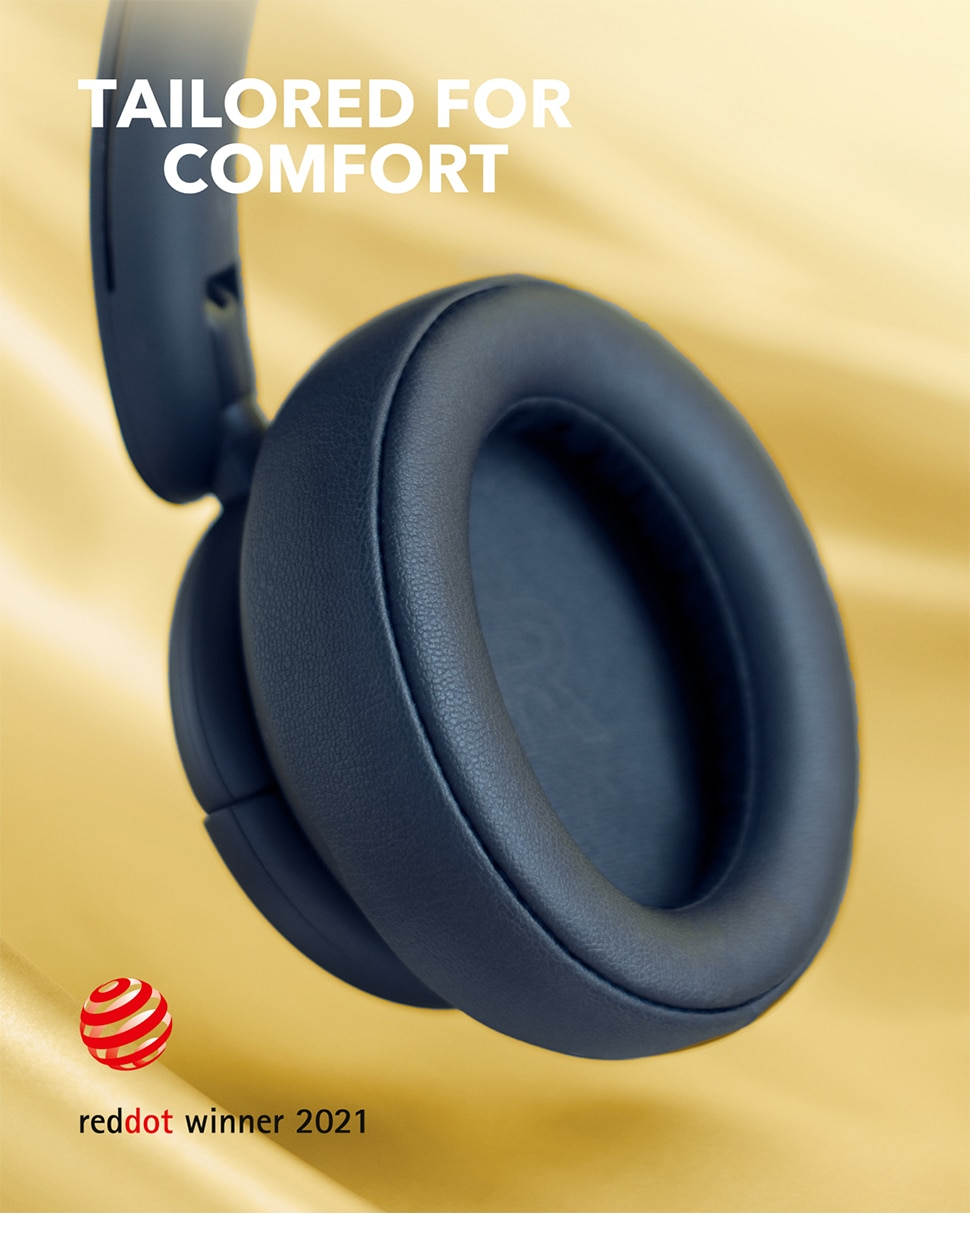 Hfdaf4154b10e4acbacd5ea7ed156192eN - Soundcore by Anker Life Q35 Multi Mode Active Noise Cancelling Headphones,40H Playtime, Comfortable Fit, Clear Calls